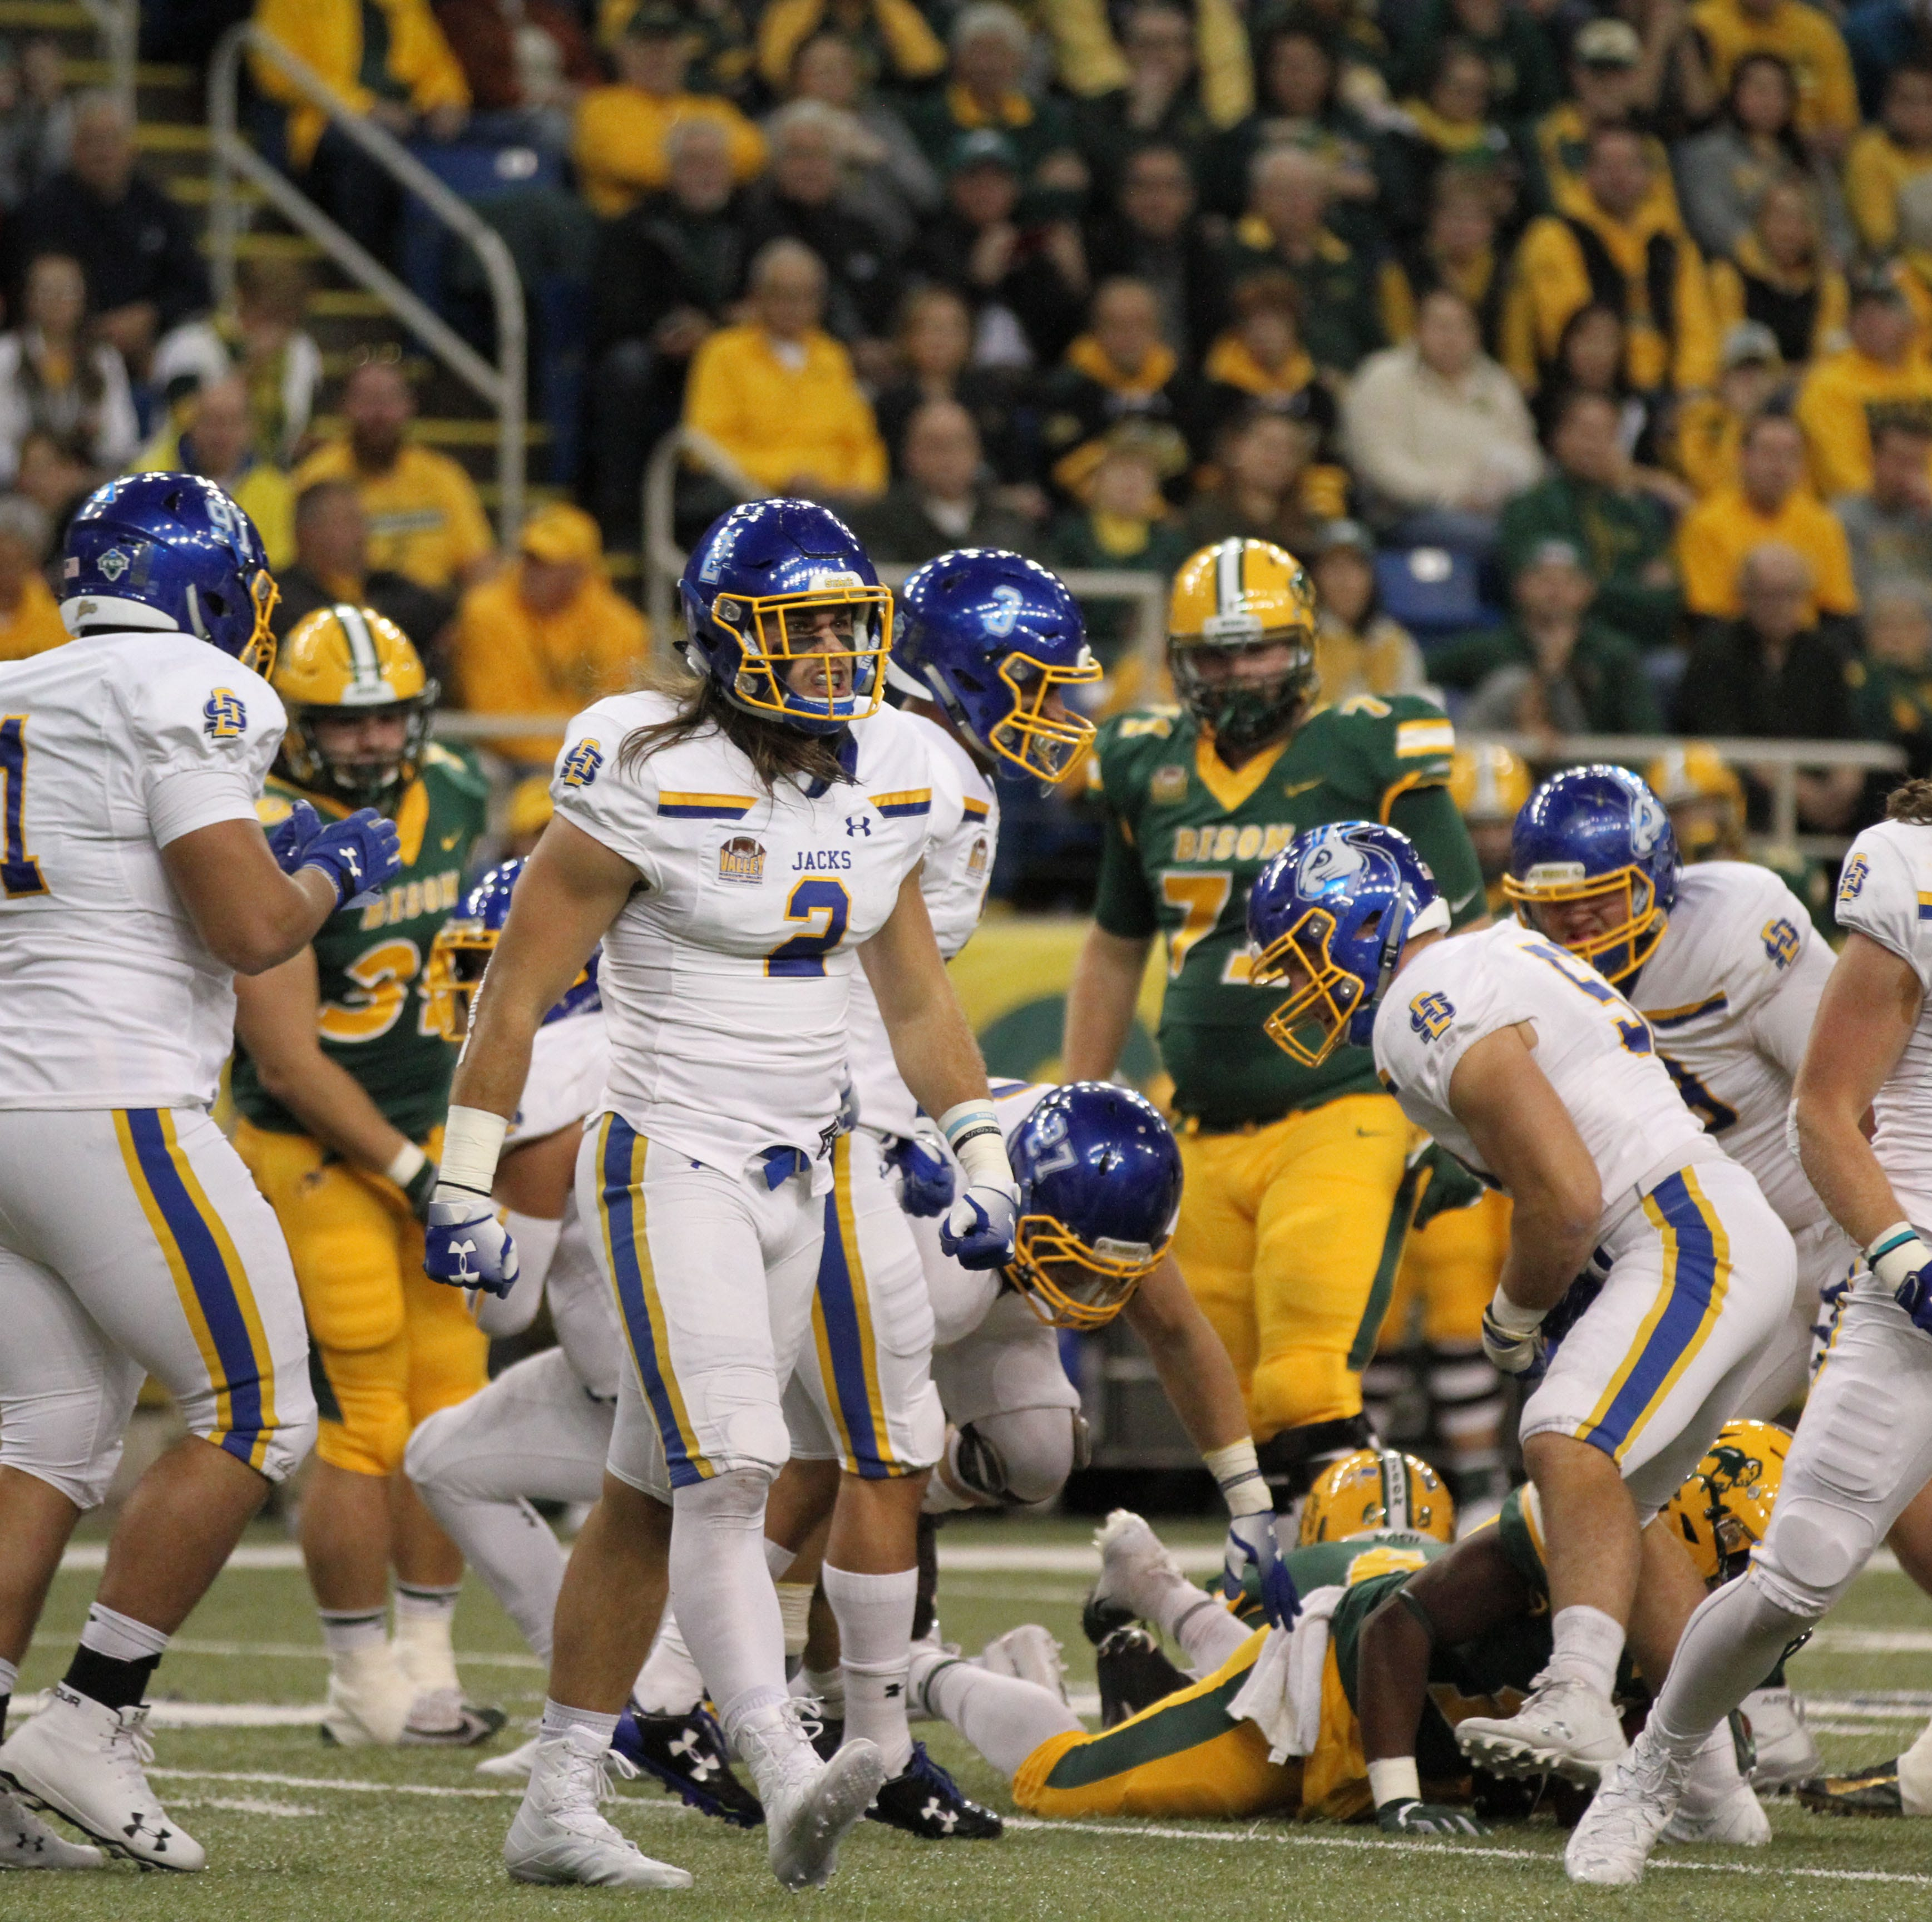 South Dakota State's Christian Rozeboom (2) and Eric Kleinschmit (31) celebrate a defensive stop during the first quarter of the Jackrabbits' matchup against North Dakota State Saturday afternoon at the Fargodome in Fargo.